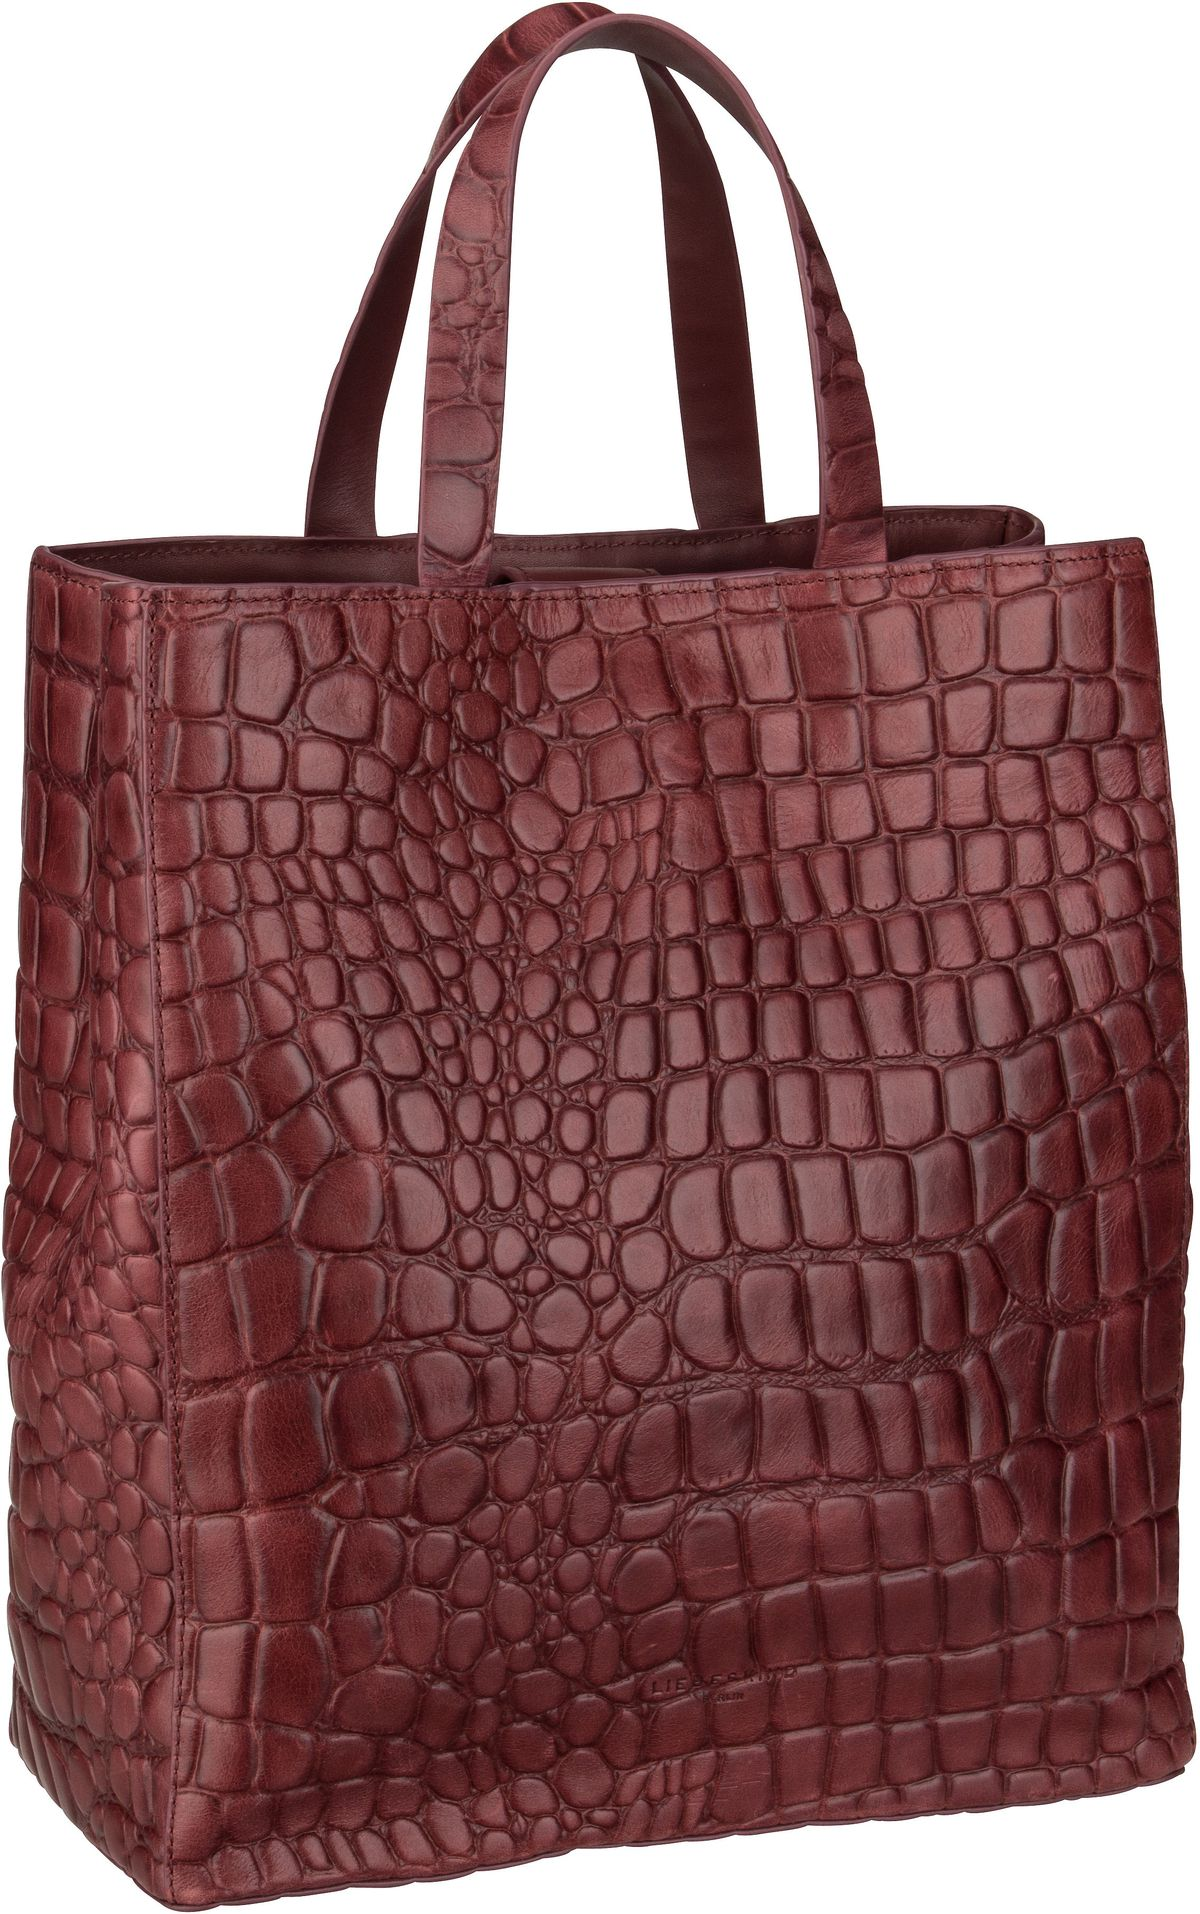 Berlin Shopper Paper Bag Croco Tote M Red Wine